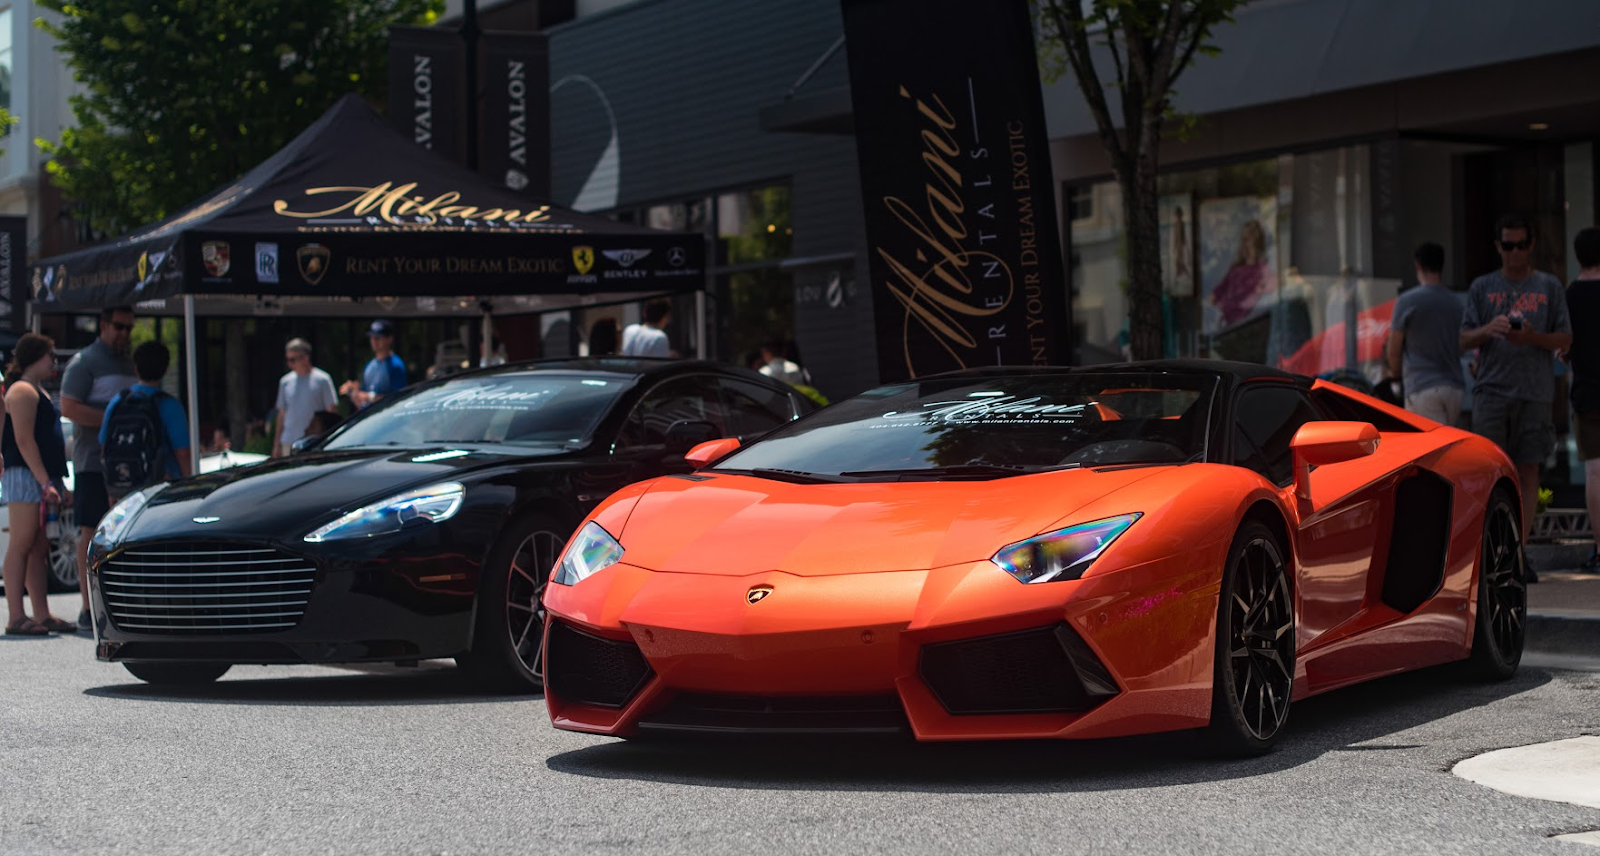 Ways to Save Money When Renting a Luxury Car on Your Next Holiday